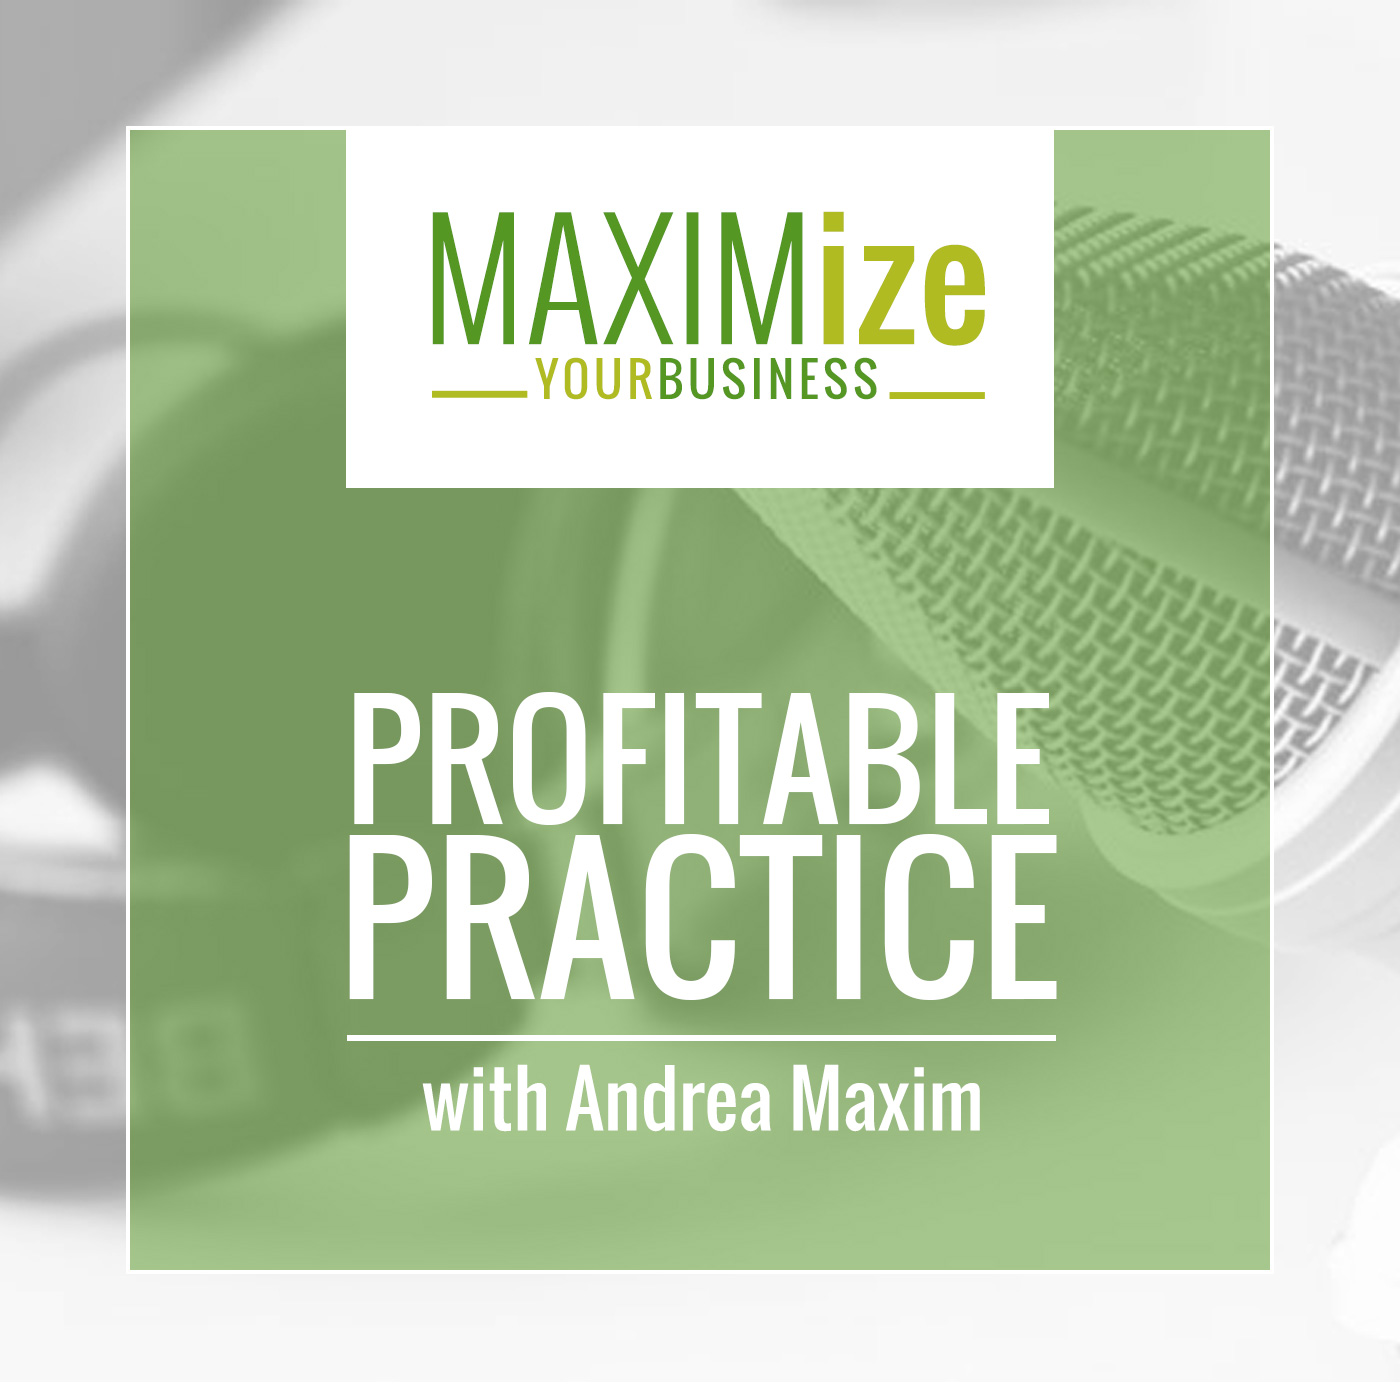 Profitable Practice Video Podcast